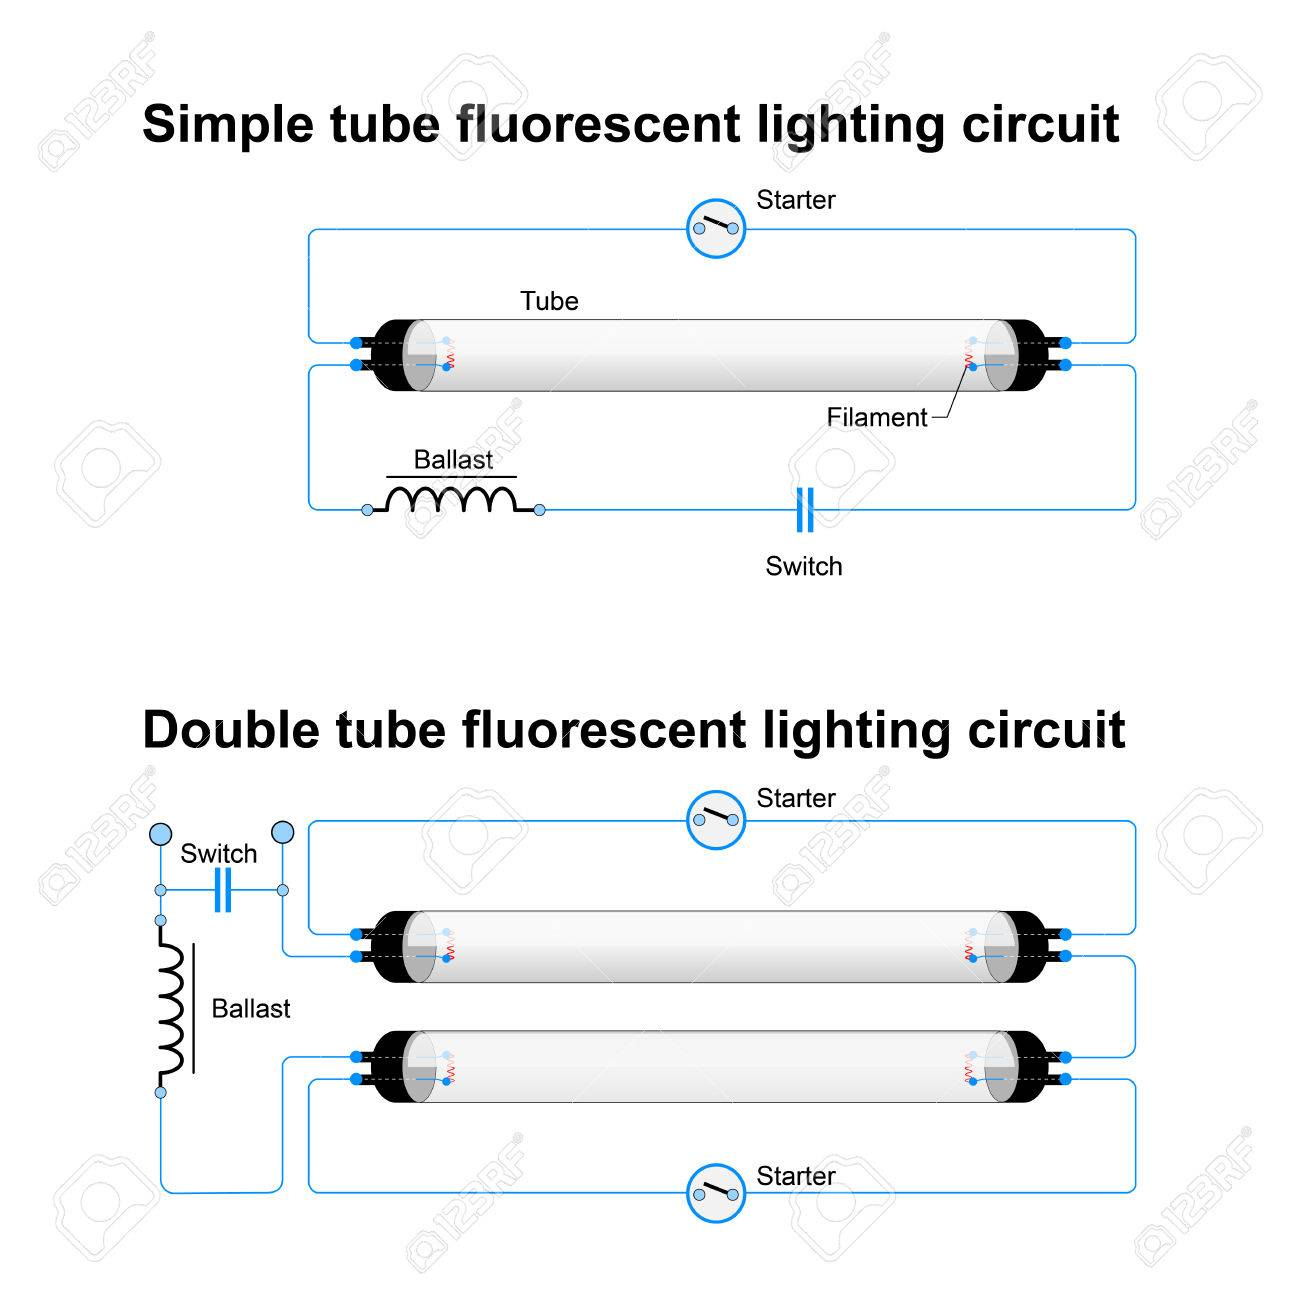 simple wiring schematics floresent easy to read wiring diagrams u2022 rh mywiringdiagram today Wiring Fluorescent Light Fixtures Fluorescent Light Fixtures